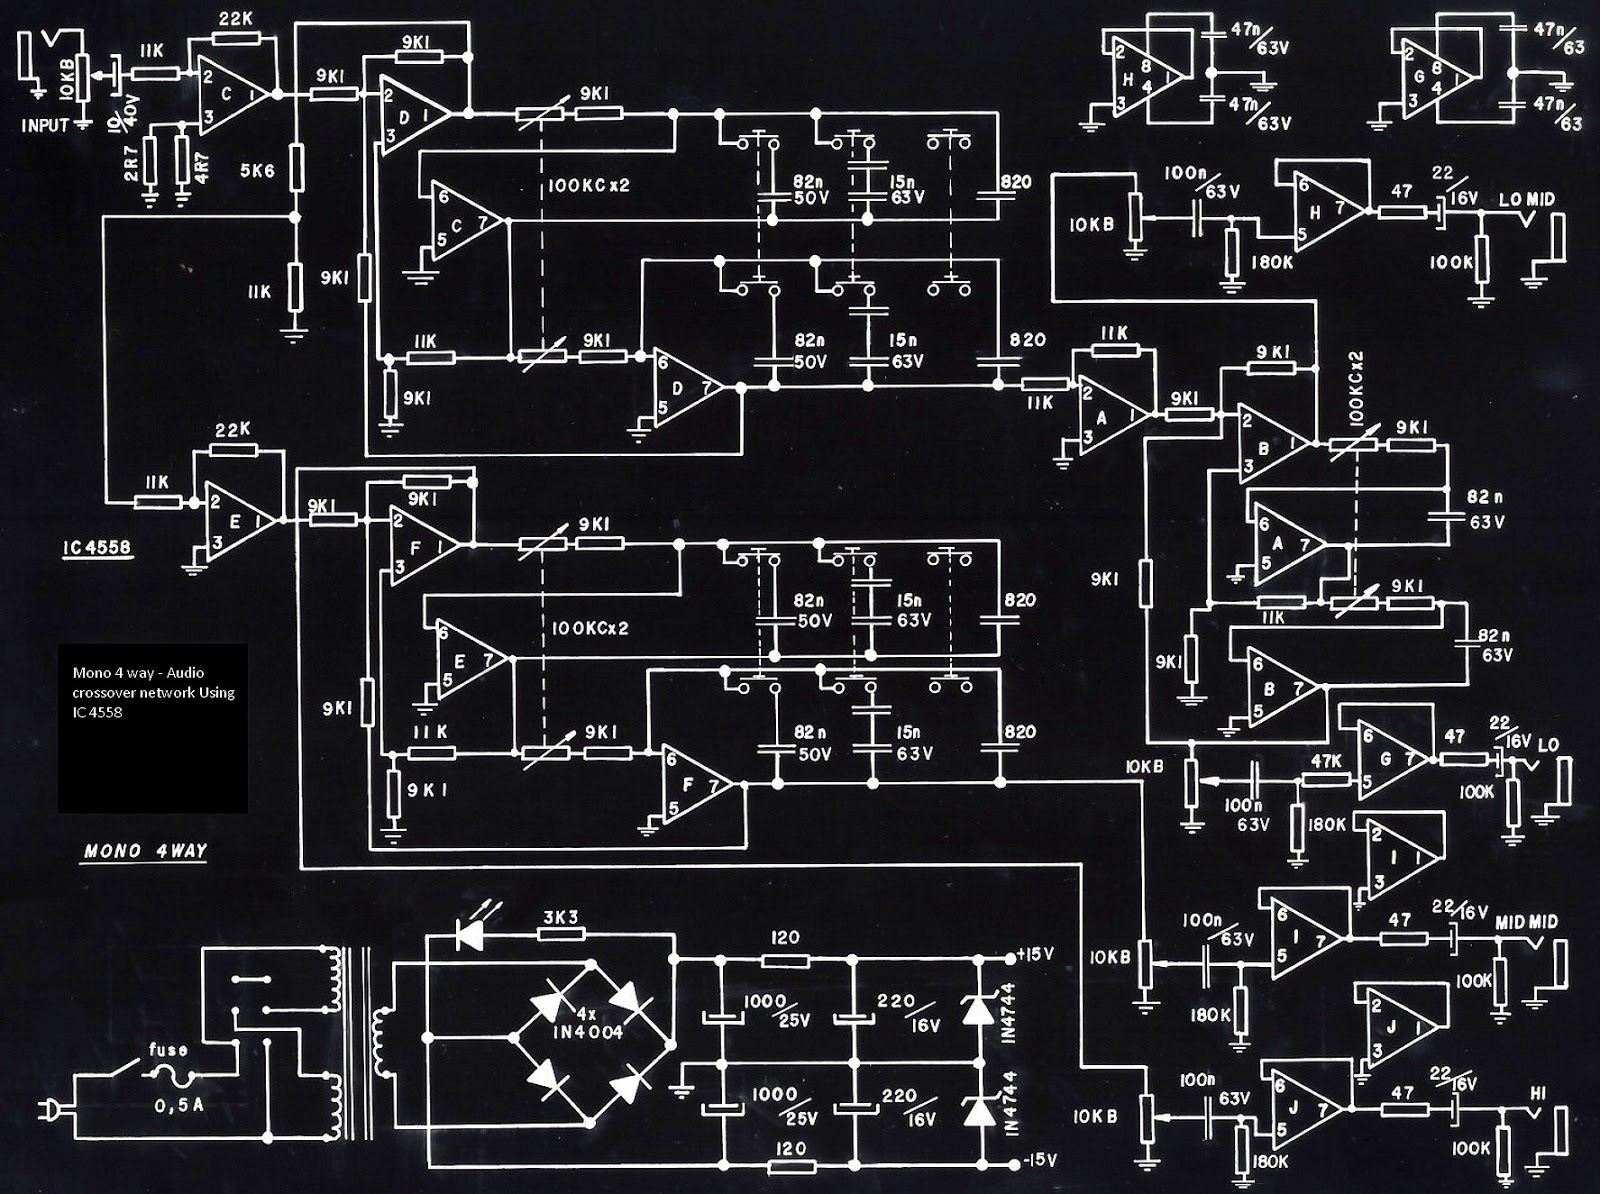 Stereo 3 Way Mono 5 Crossover And Hi Power Amplifier Using Schematic Diagram Circuit Ic 4558